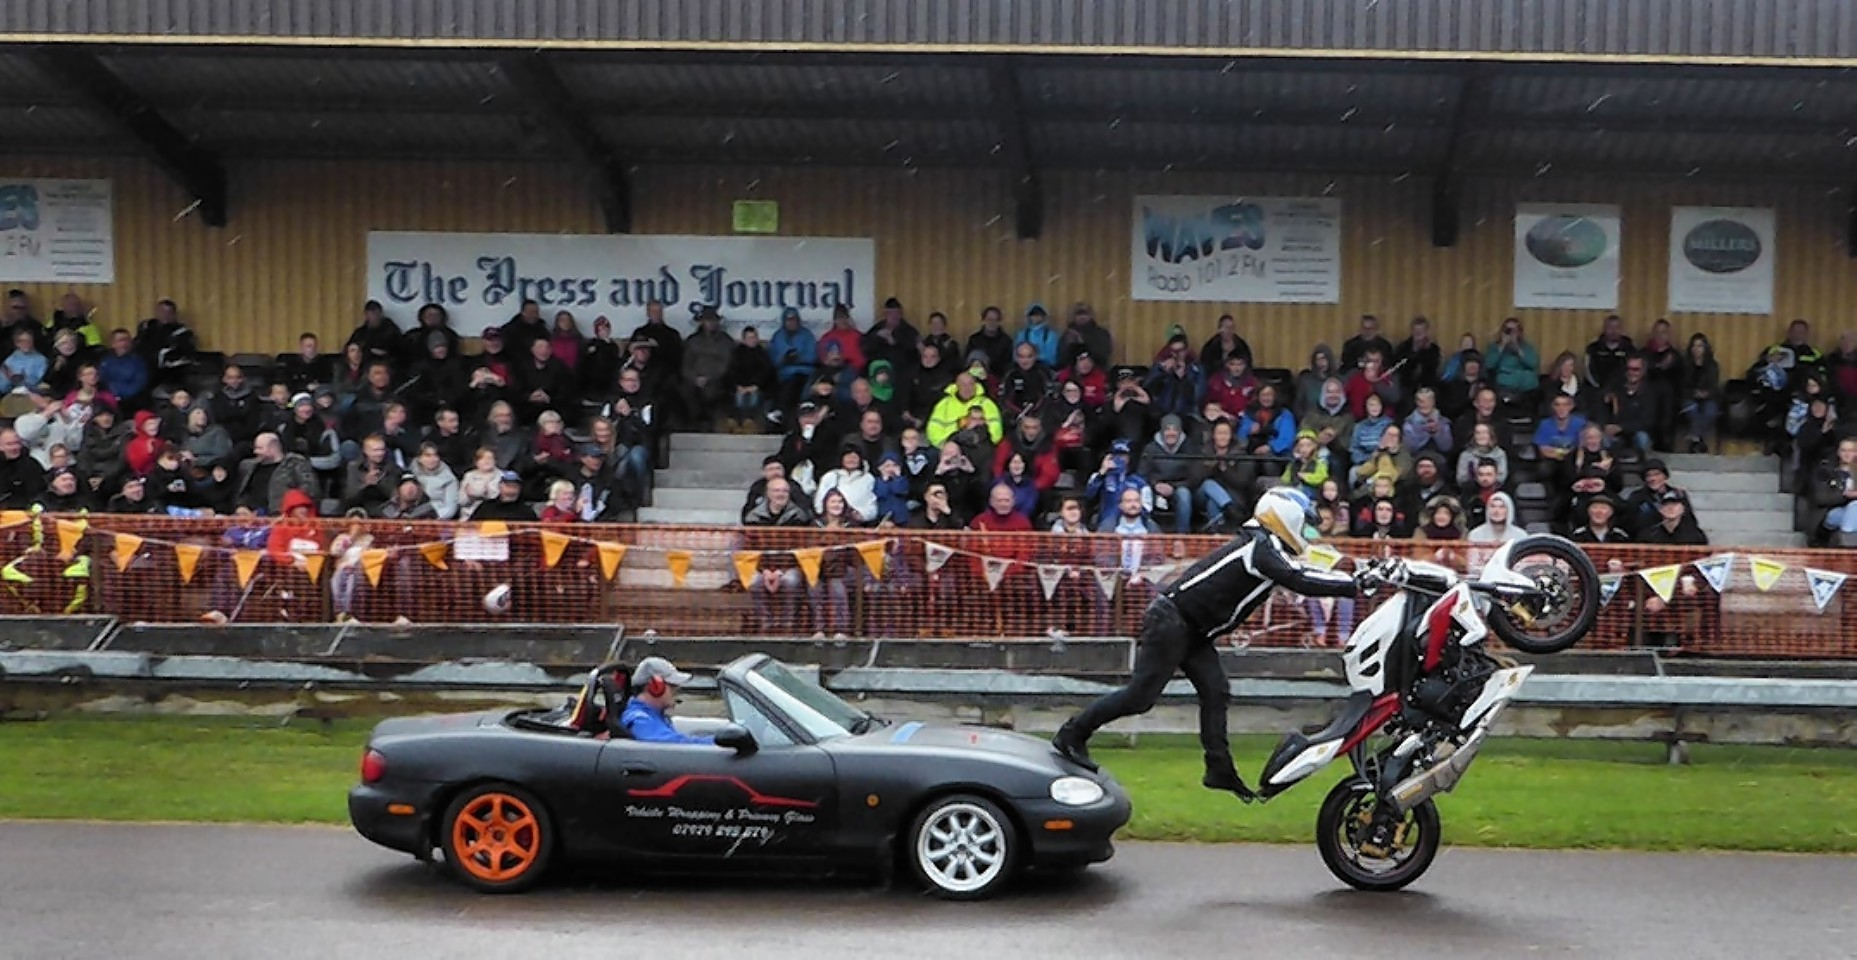 The Grampian Motorcycle Convention is one of the biggest in the UK